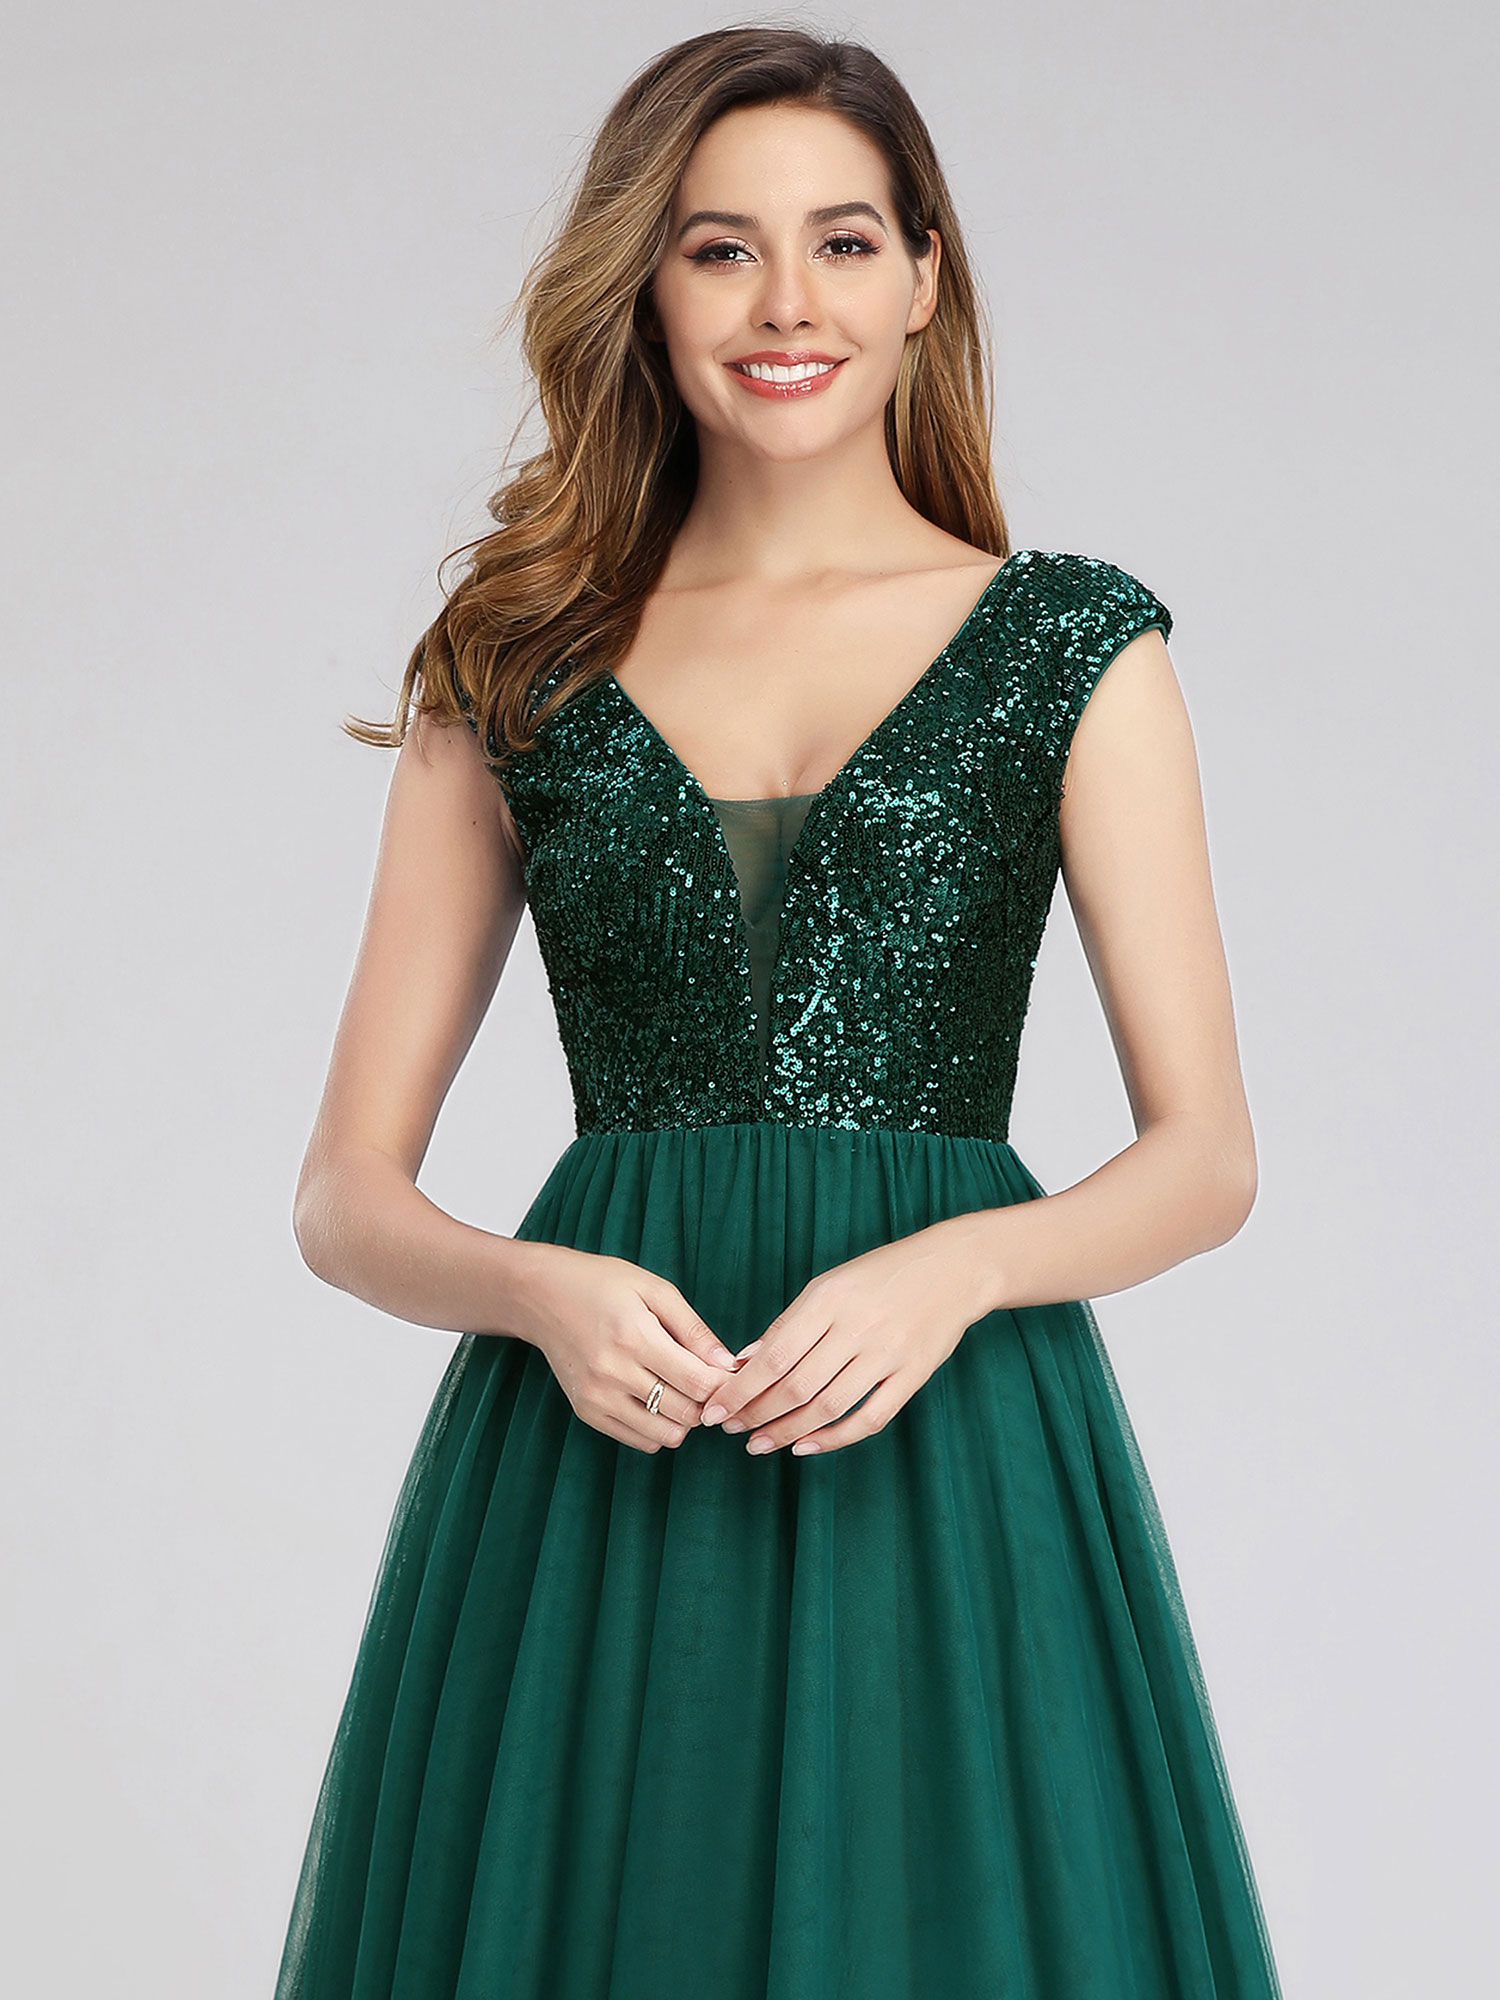 Ever-Pretty-A-Line-Bridesmaid-Dresses-Long-Chiffon-Lace-Wedding-Prom-Gown-00983 thumbnail 8